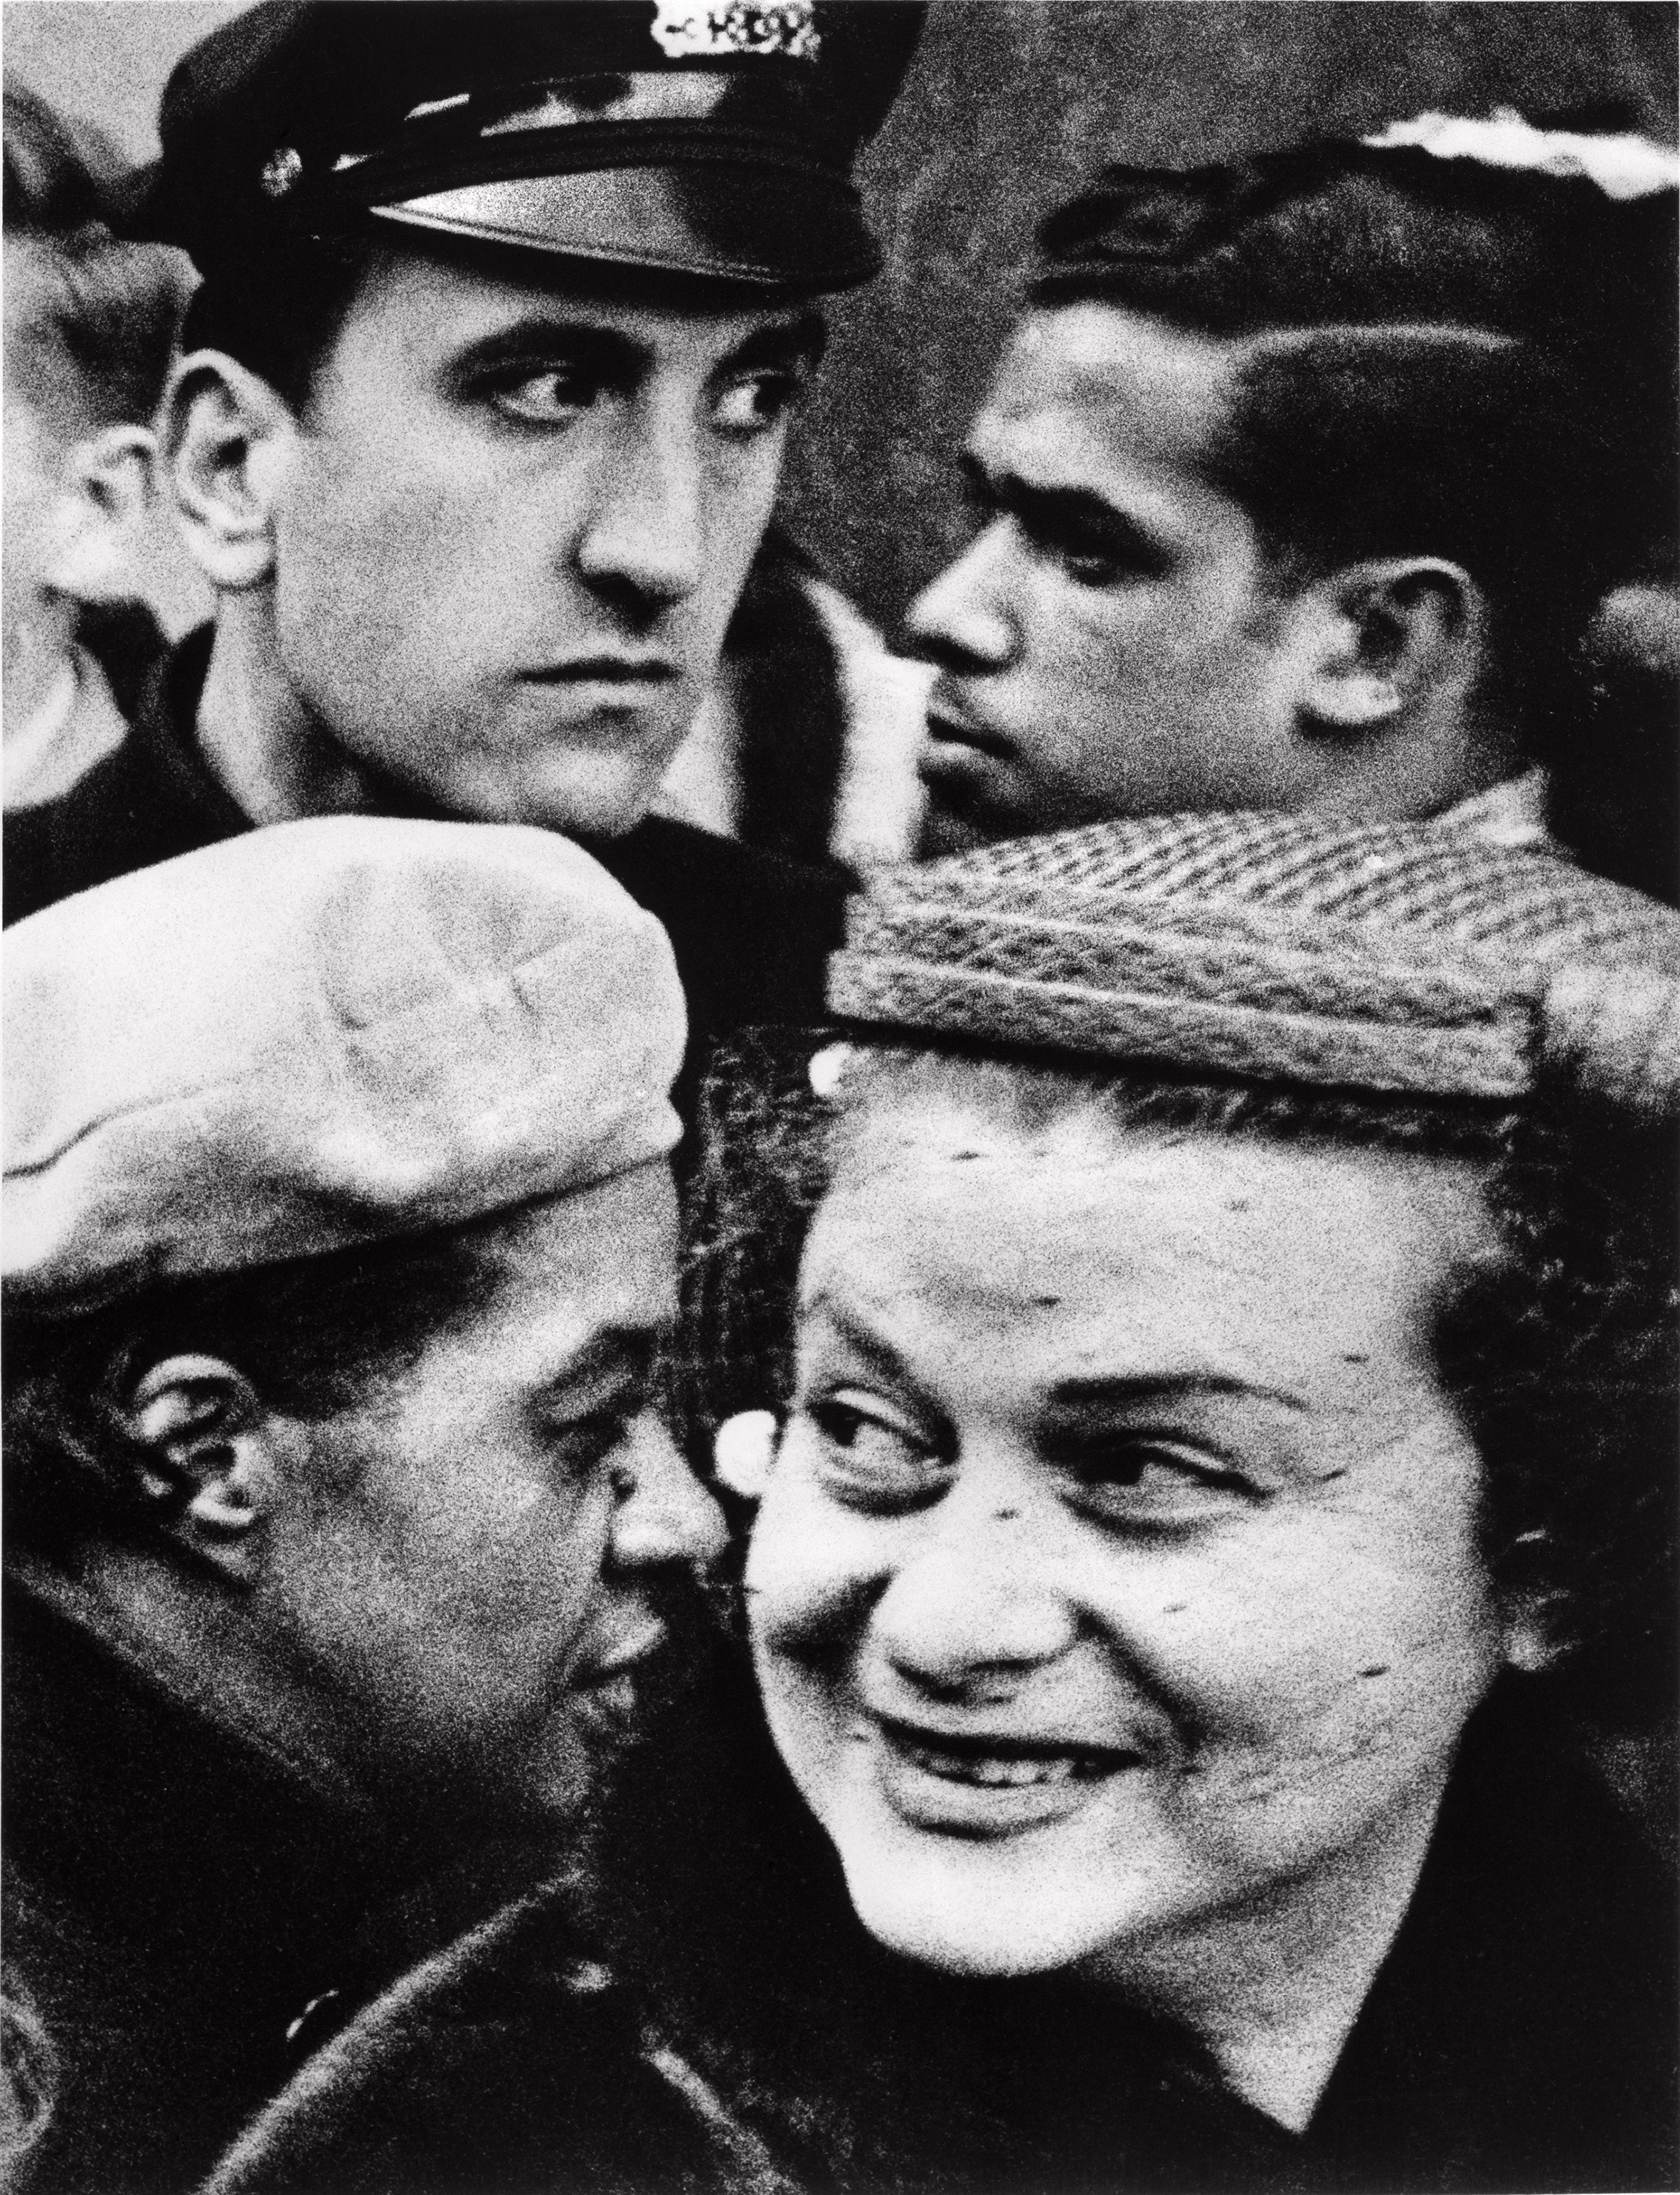 William Klein, Quatre têtes, fête de Thanksgiving, Broadway & 33rd, New York 1954 © William Klein